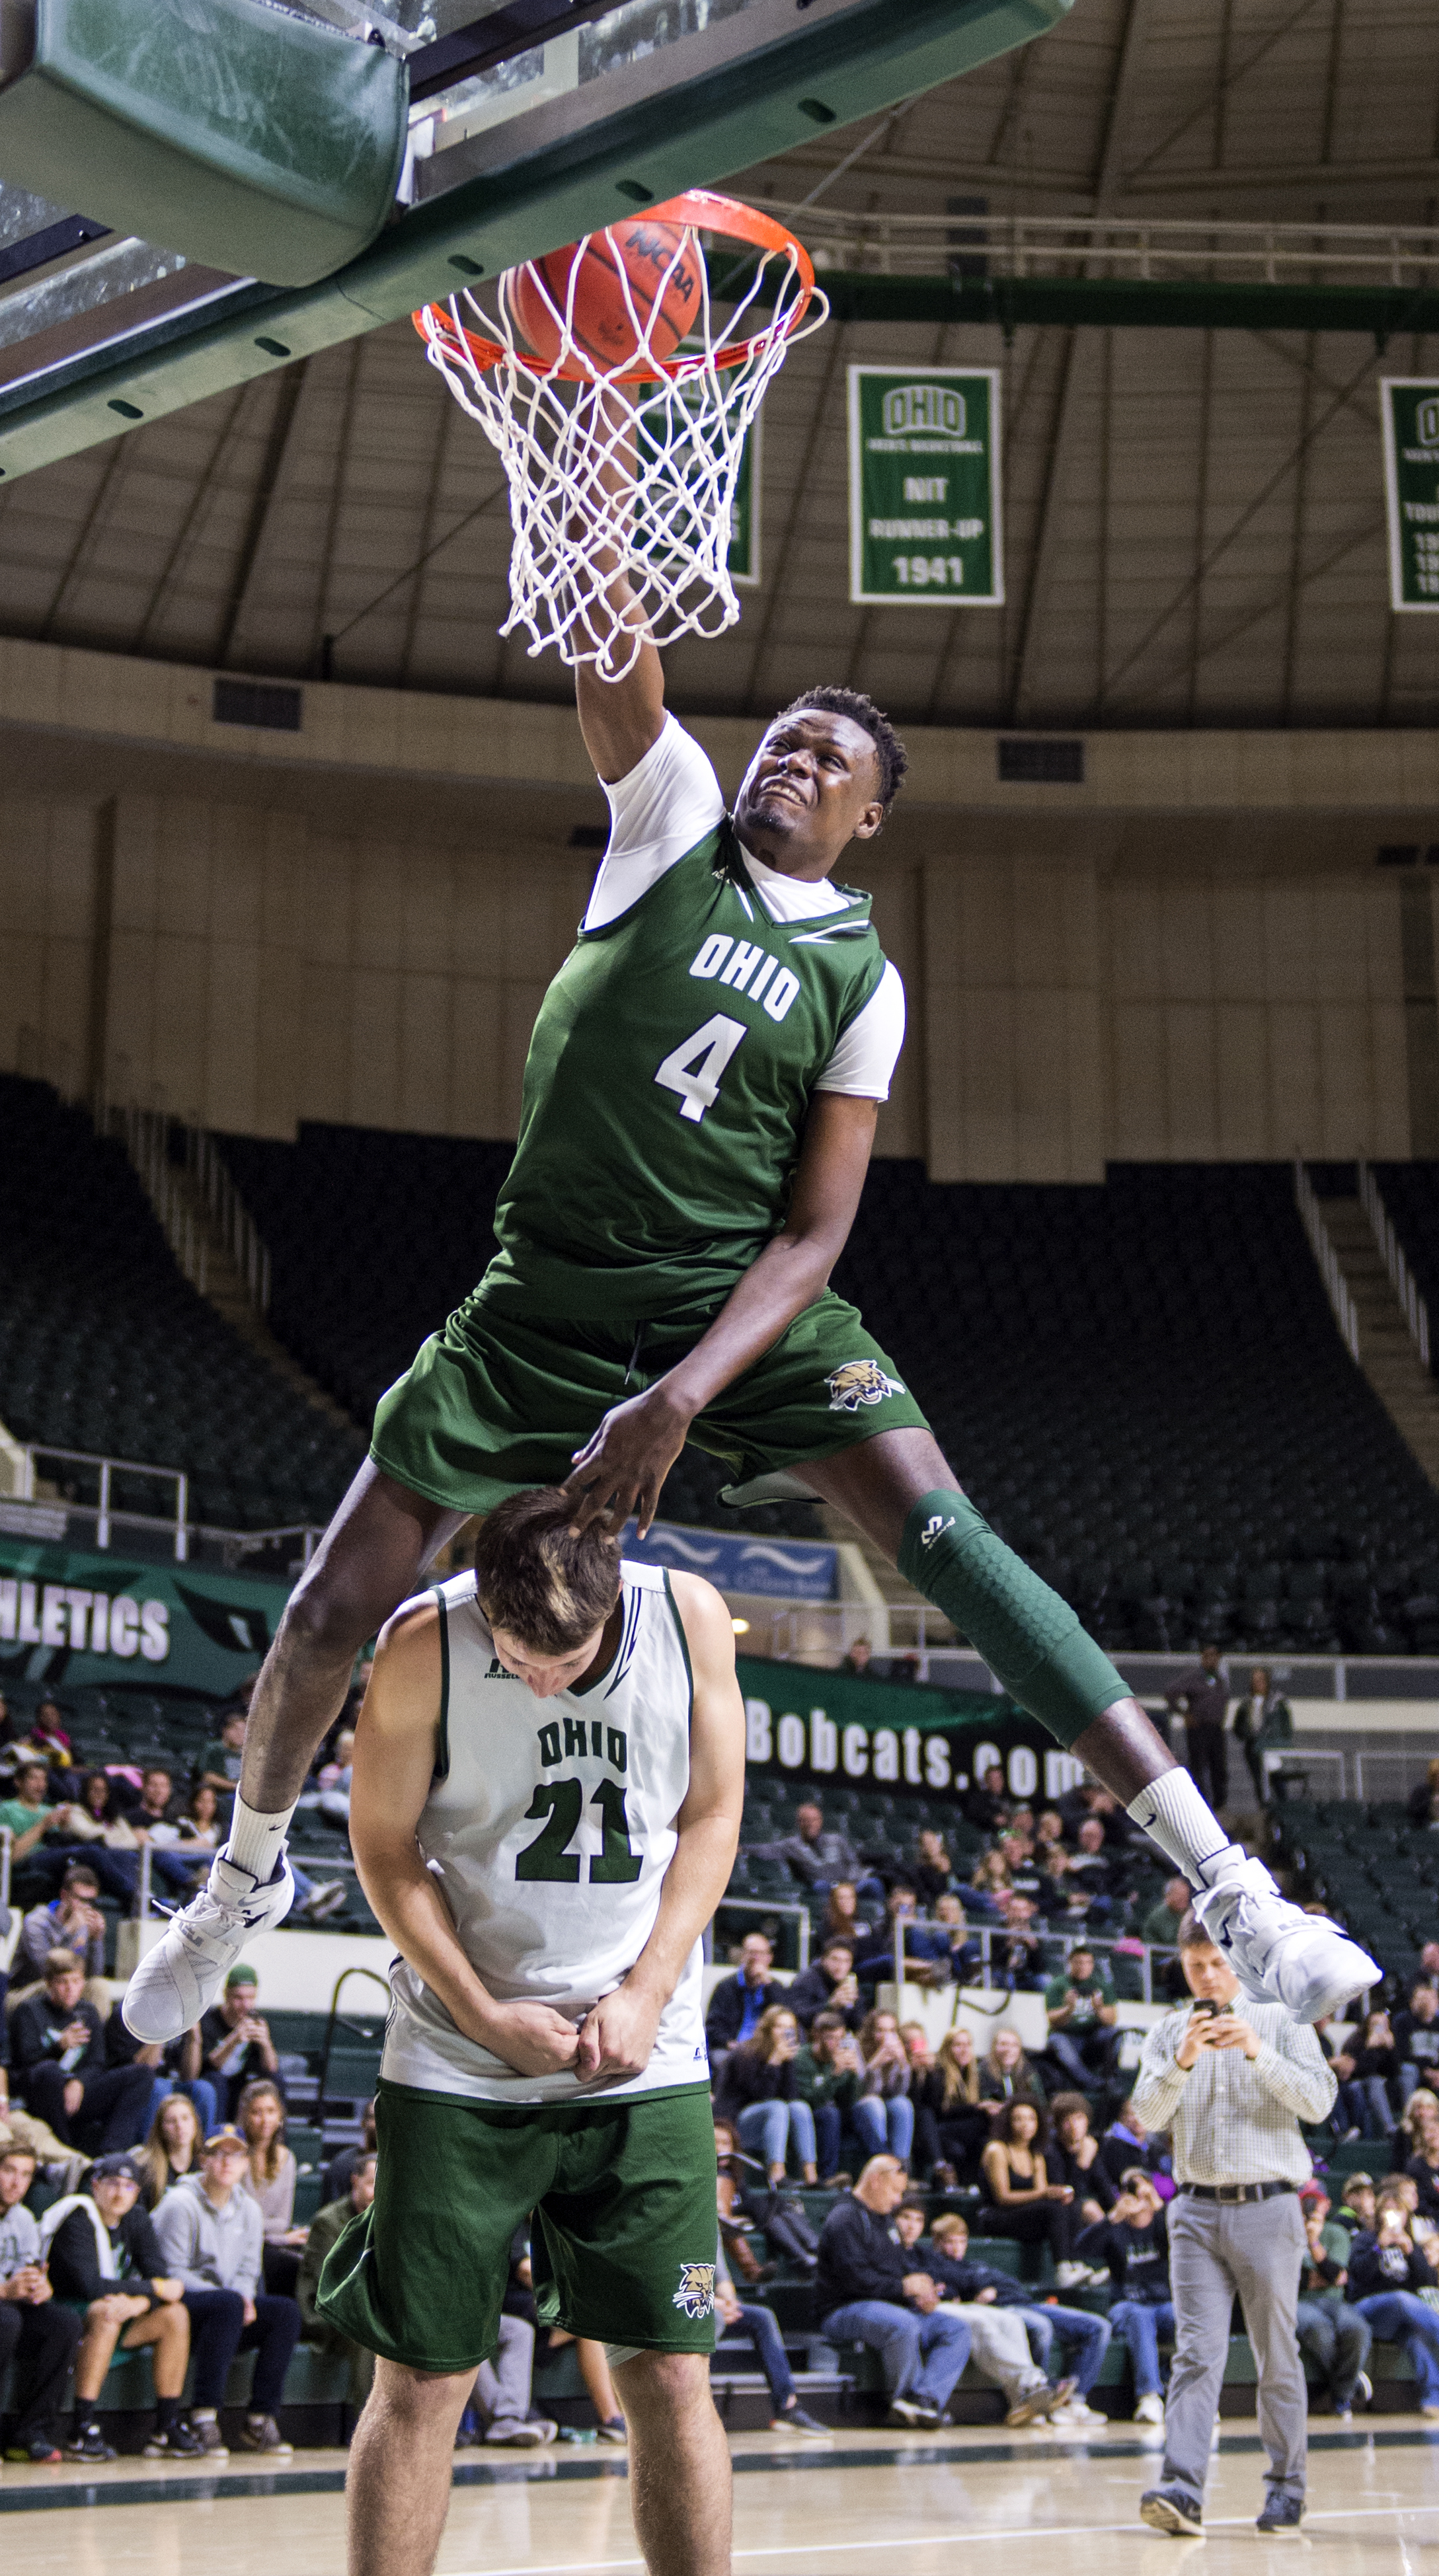 Ohio University junior Wadly Mompremier dunks over sophomore Sam Frayer during the green and white scrimmage on Saturday, Oct. 17, 2015. (Daniel Rader/WOUB)